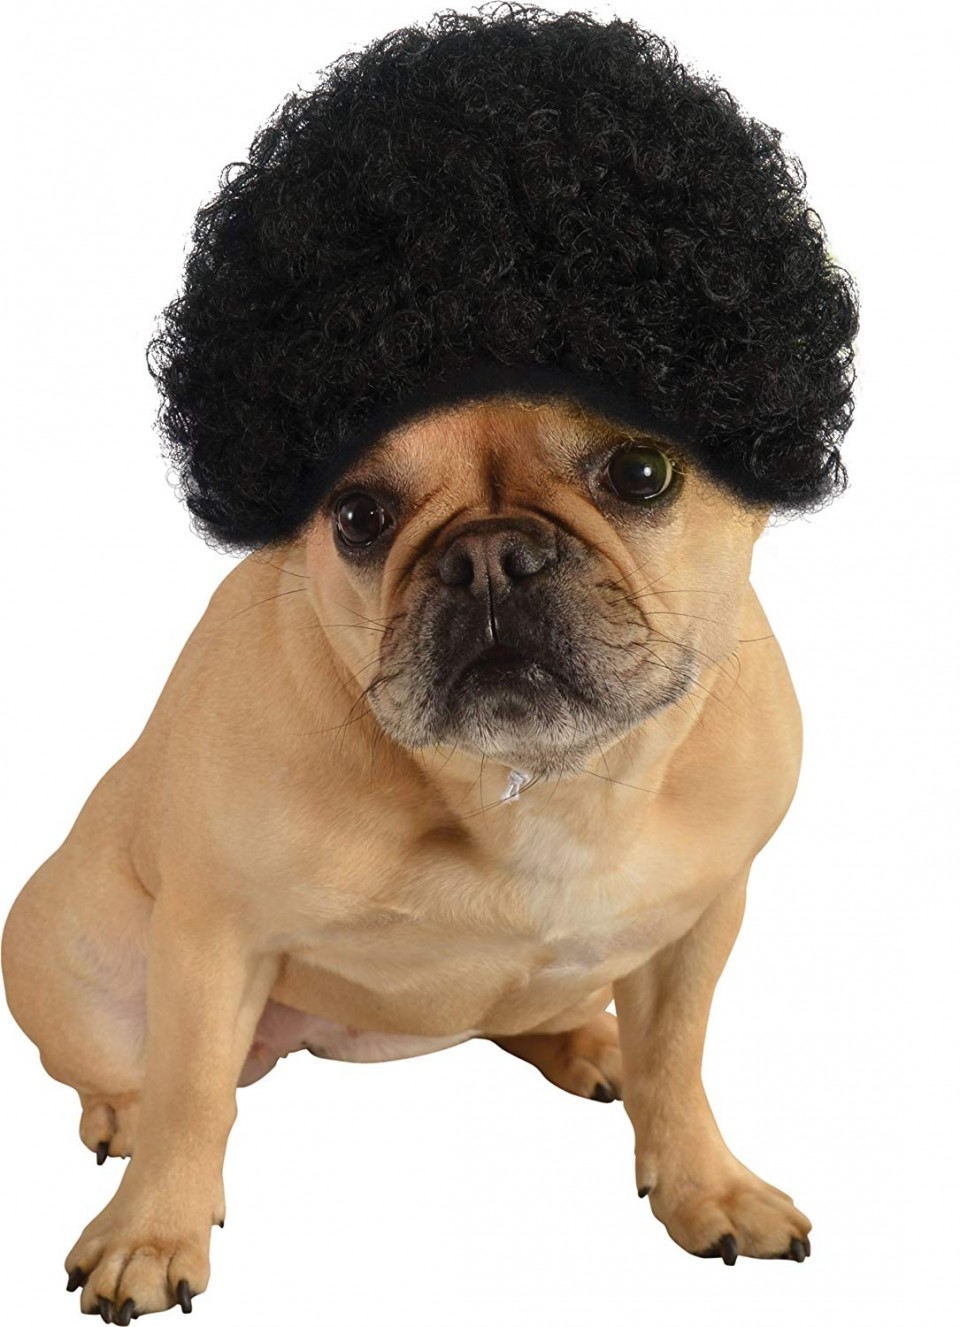 funny animal hairstyles pug head